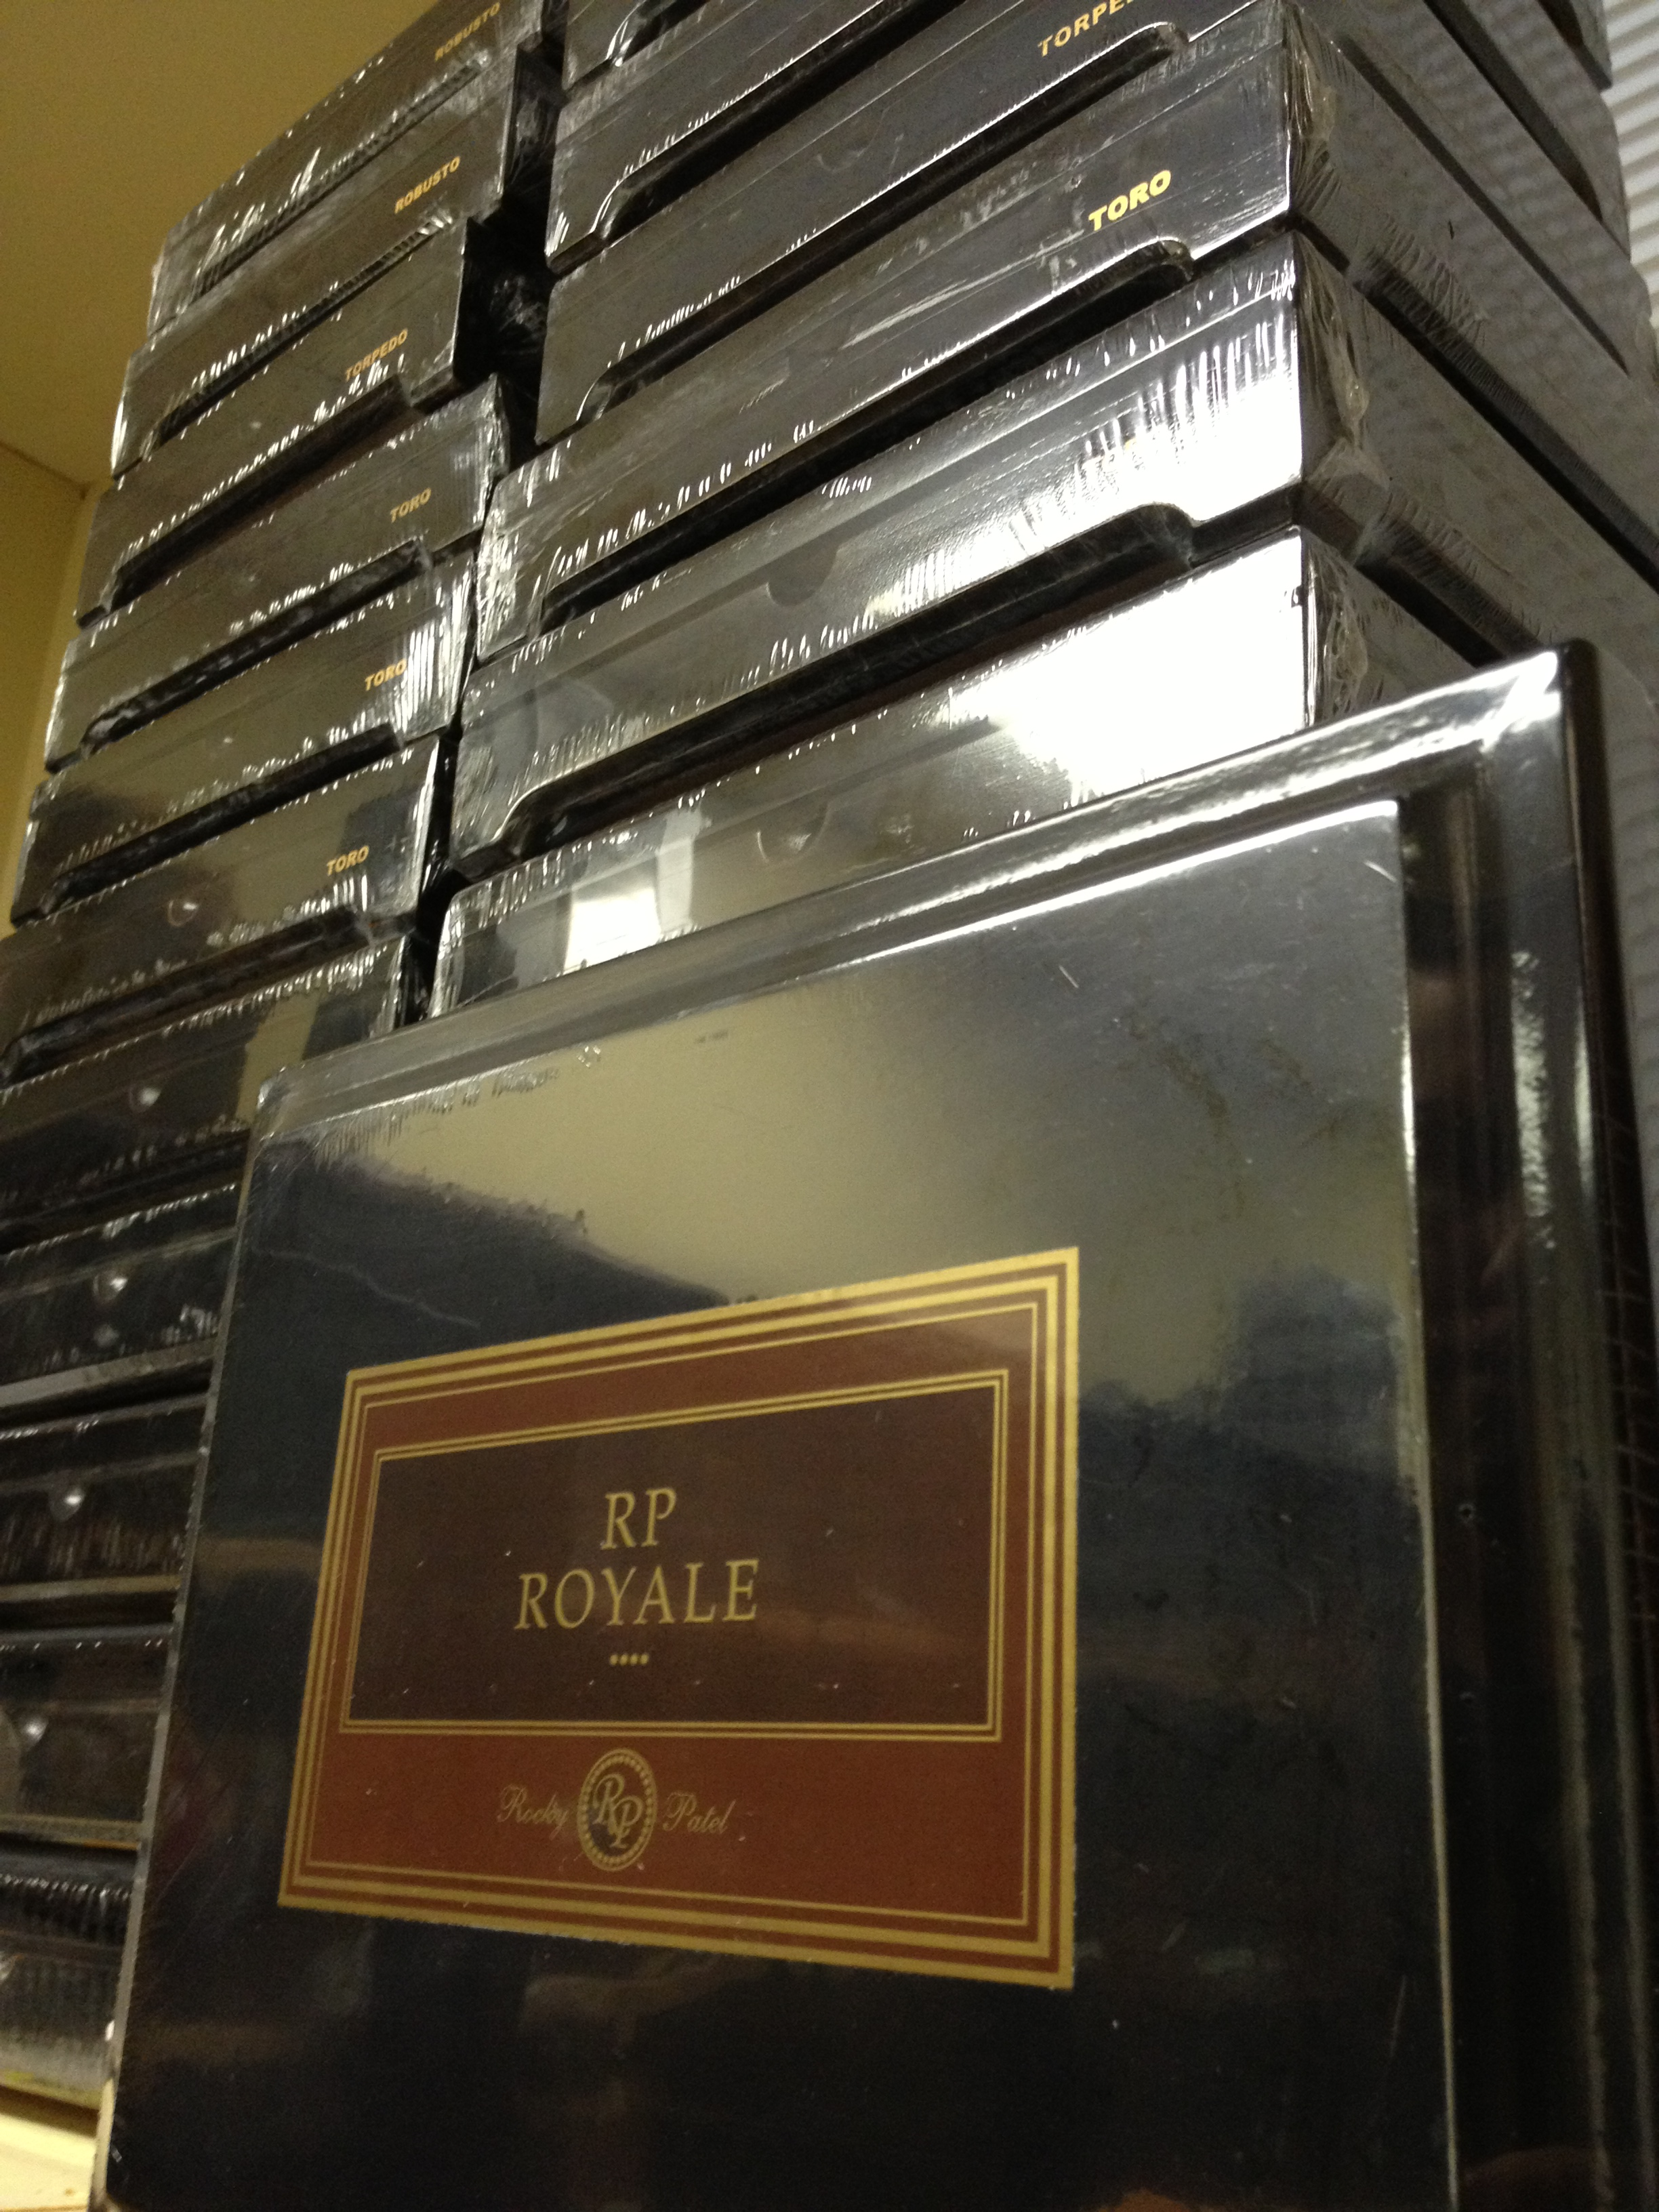 rocky patel royale cigars box stack image